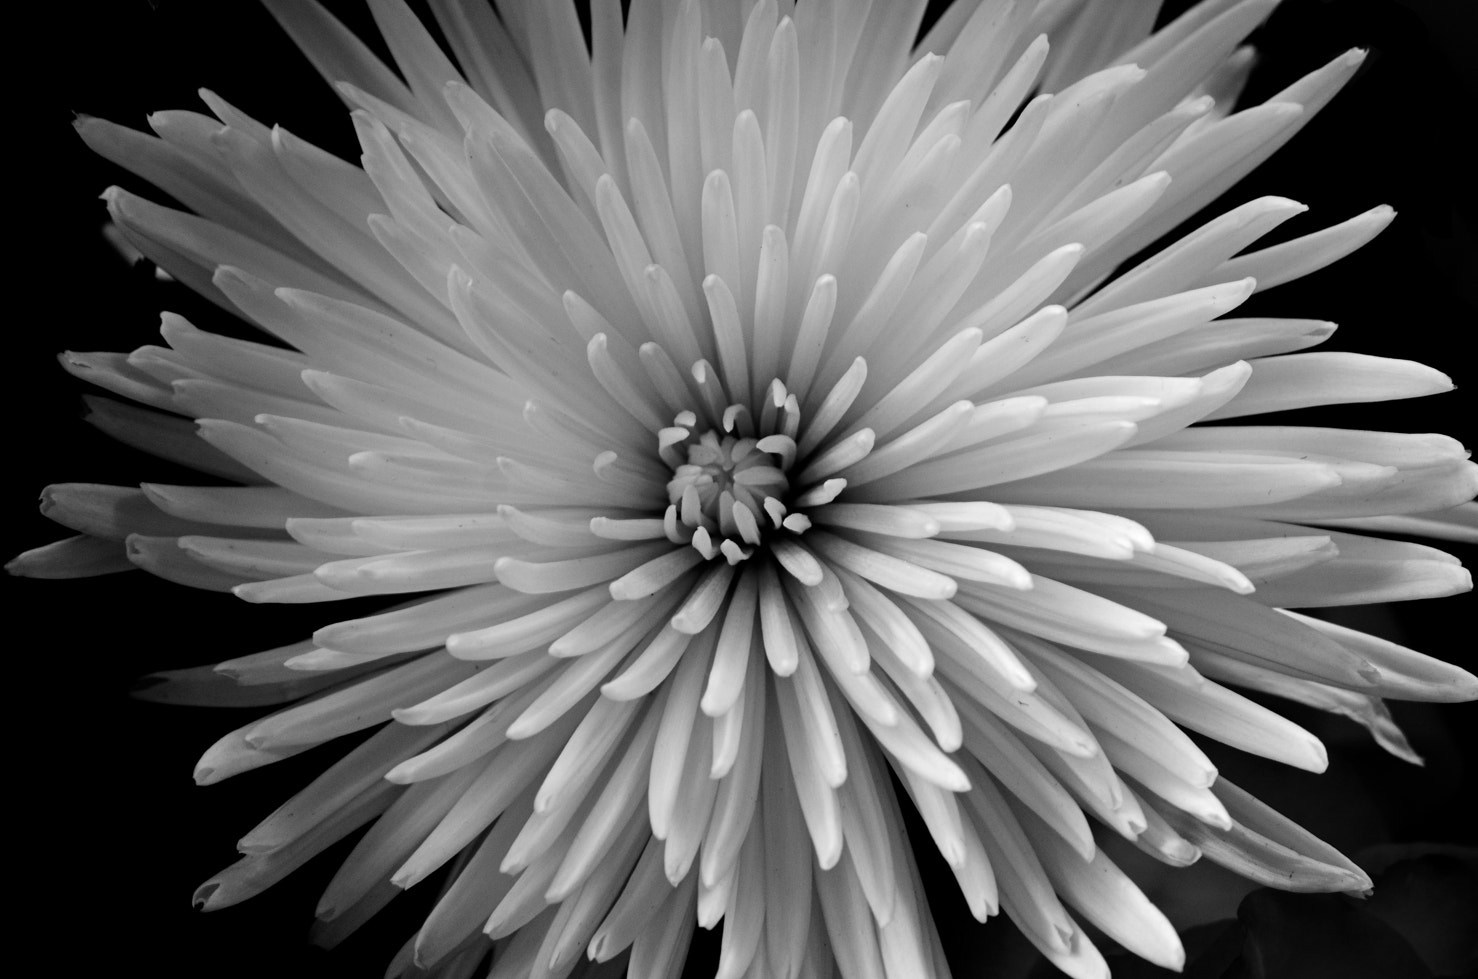 Photograph starburst by Darrin Snyder on 500px